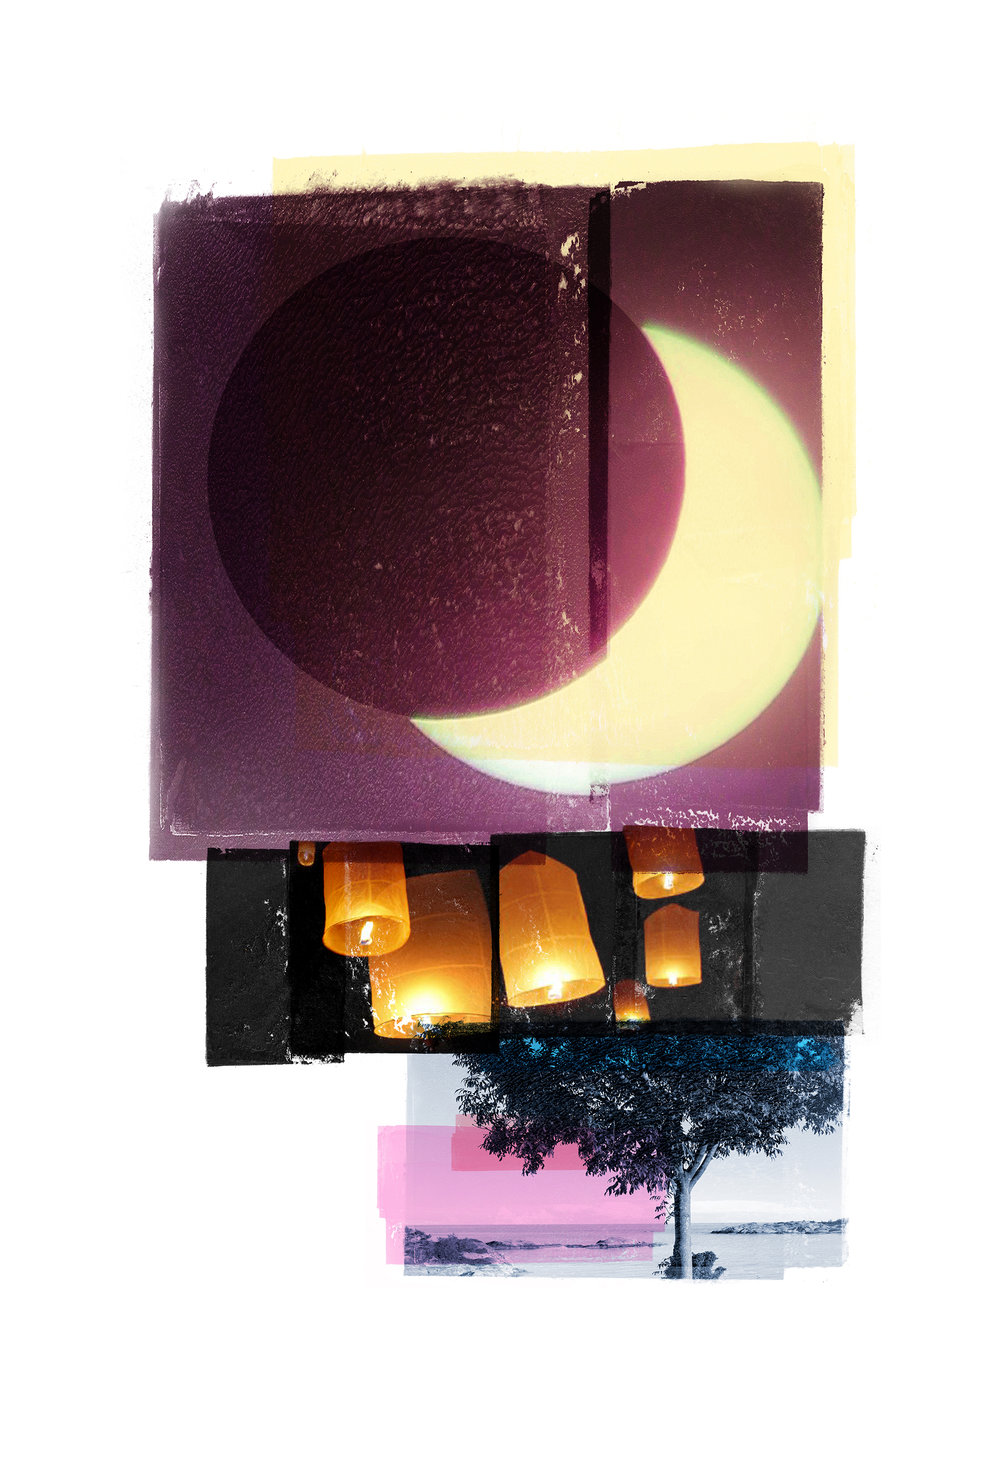 Wishlist / Eclipse   Original Archival UV Pigment Print / BFK Rives 250 gr 35 x 56 cm / 22 x 13,7 in Edition of 50 + 7 Ap Editeur: Per Fronth Studios / Printer Henrik Aunevik  05/2016: